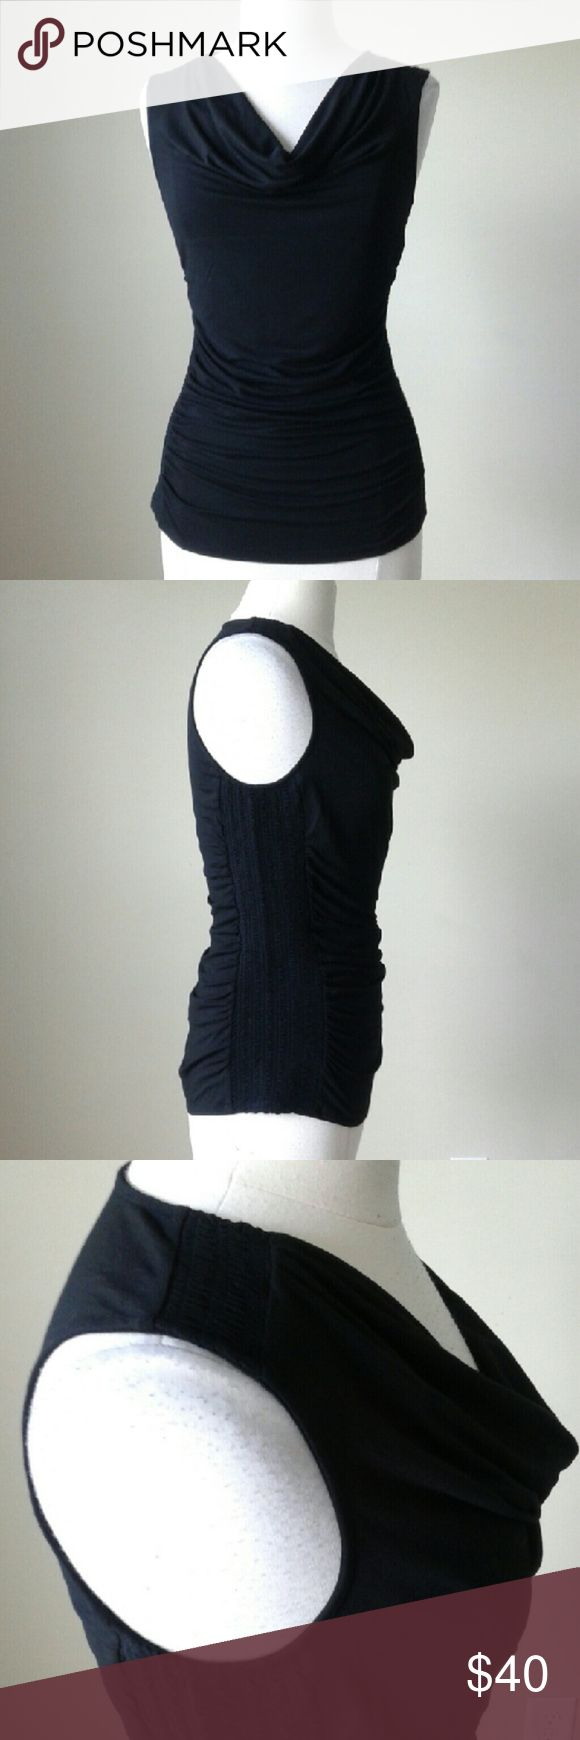 Sleeveless smocked drape neck shell top -Smocked sides and shoulders -Stretch fit -95% rayon, 5% spandex -Bust 38.5 inches, length 25.5 inches White House Black Market Tops Blouses